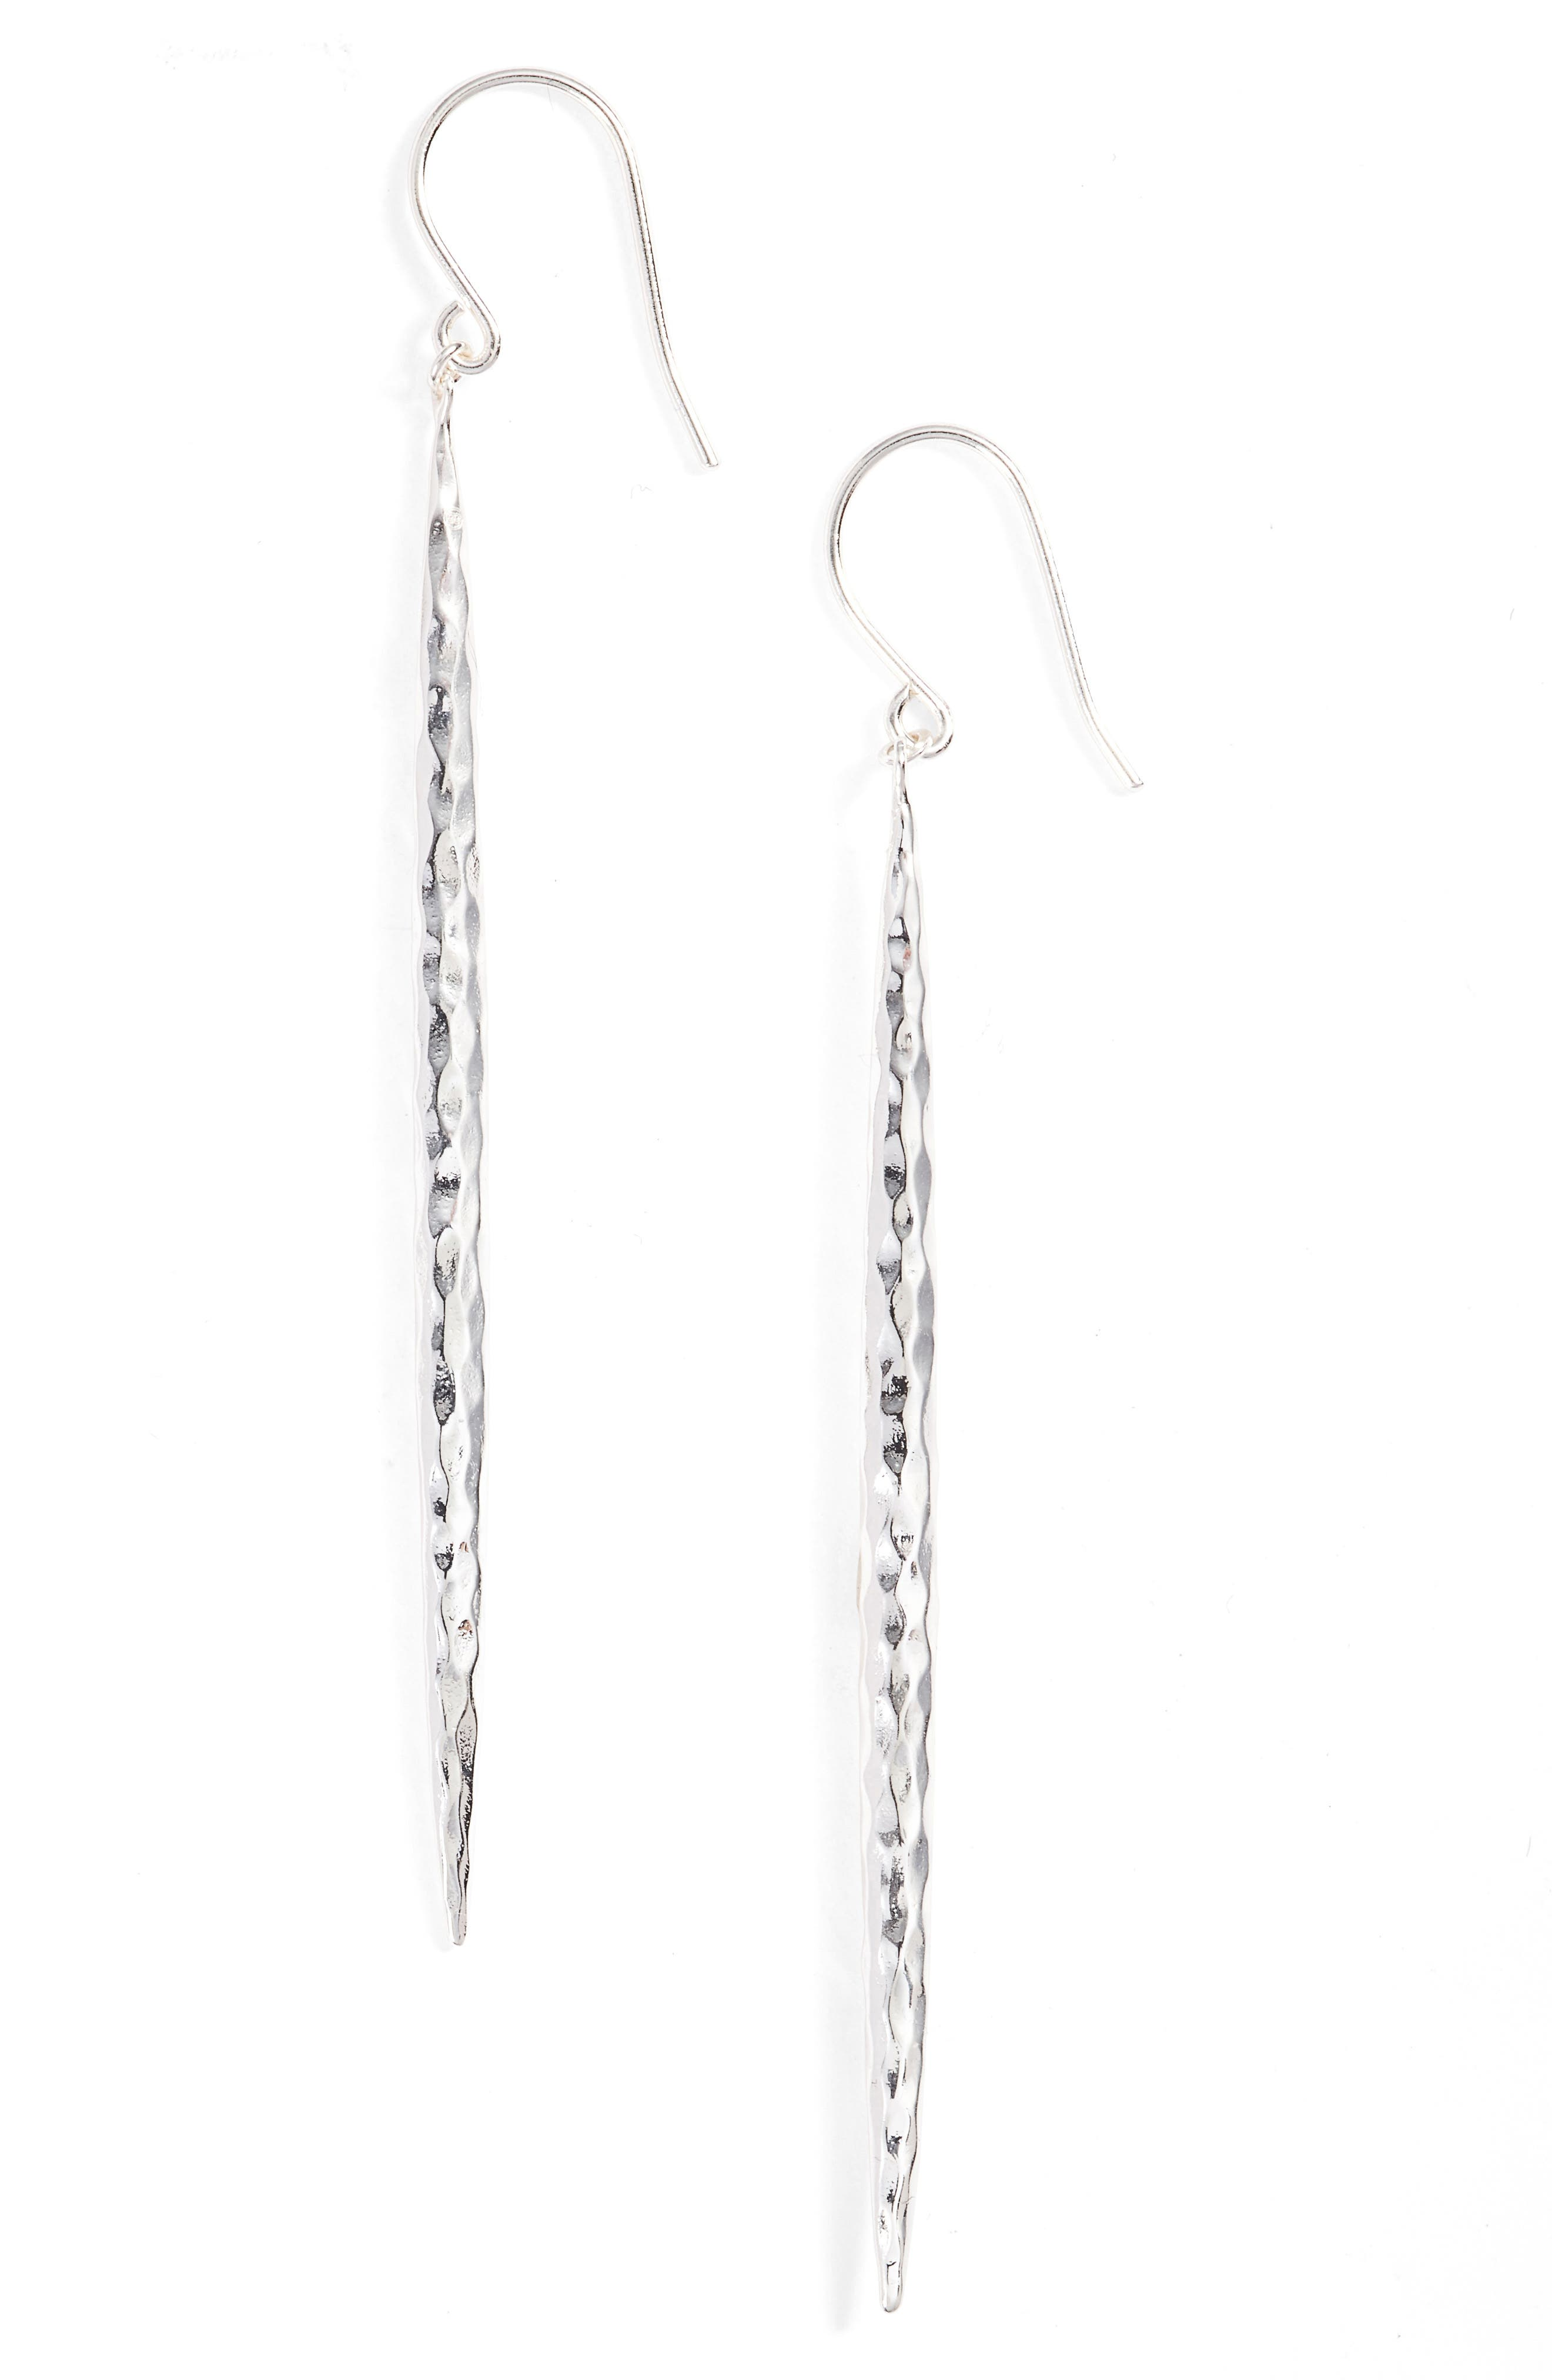 Nora Linear Earrings,                         Main,                         color, Silver